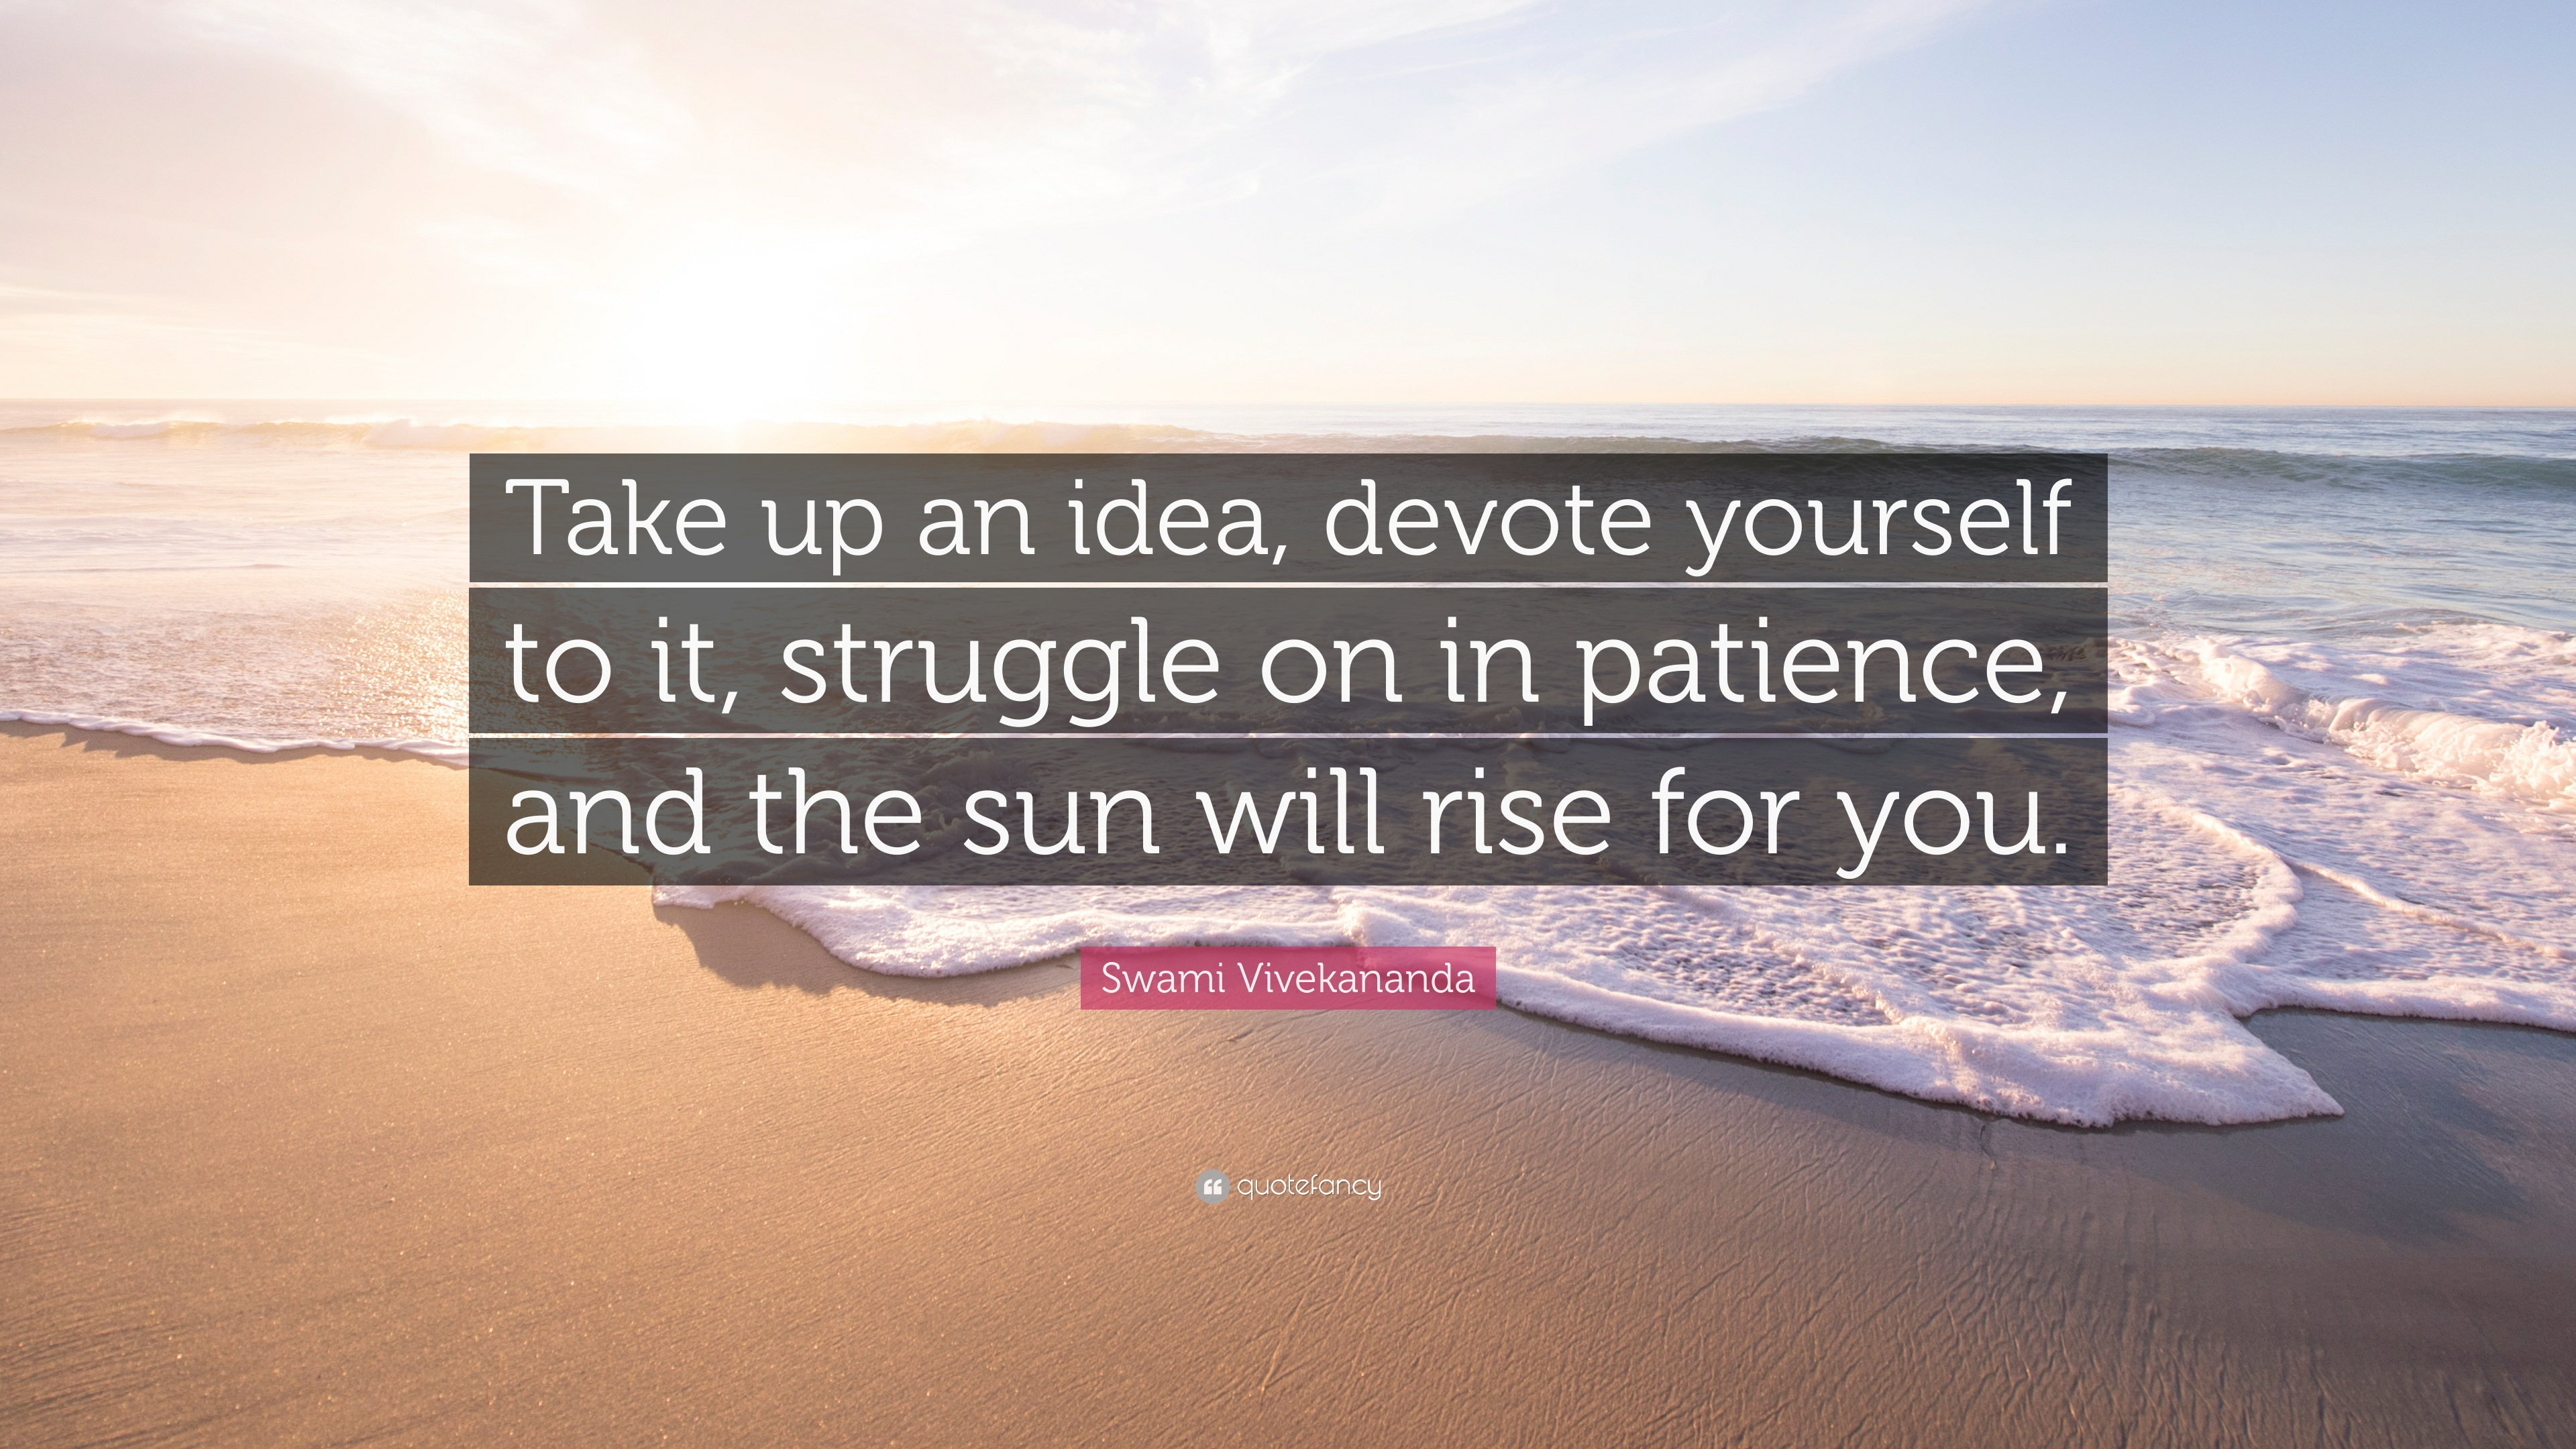 Patience Quotes: U201cTake Up An Idea, Devote Yourself To It, Struggle On